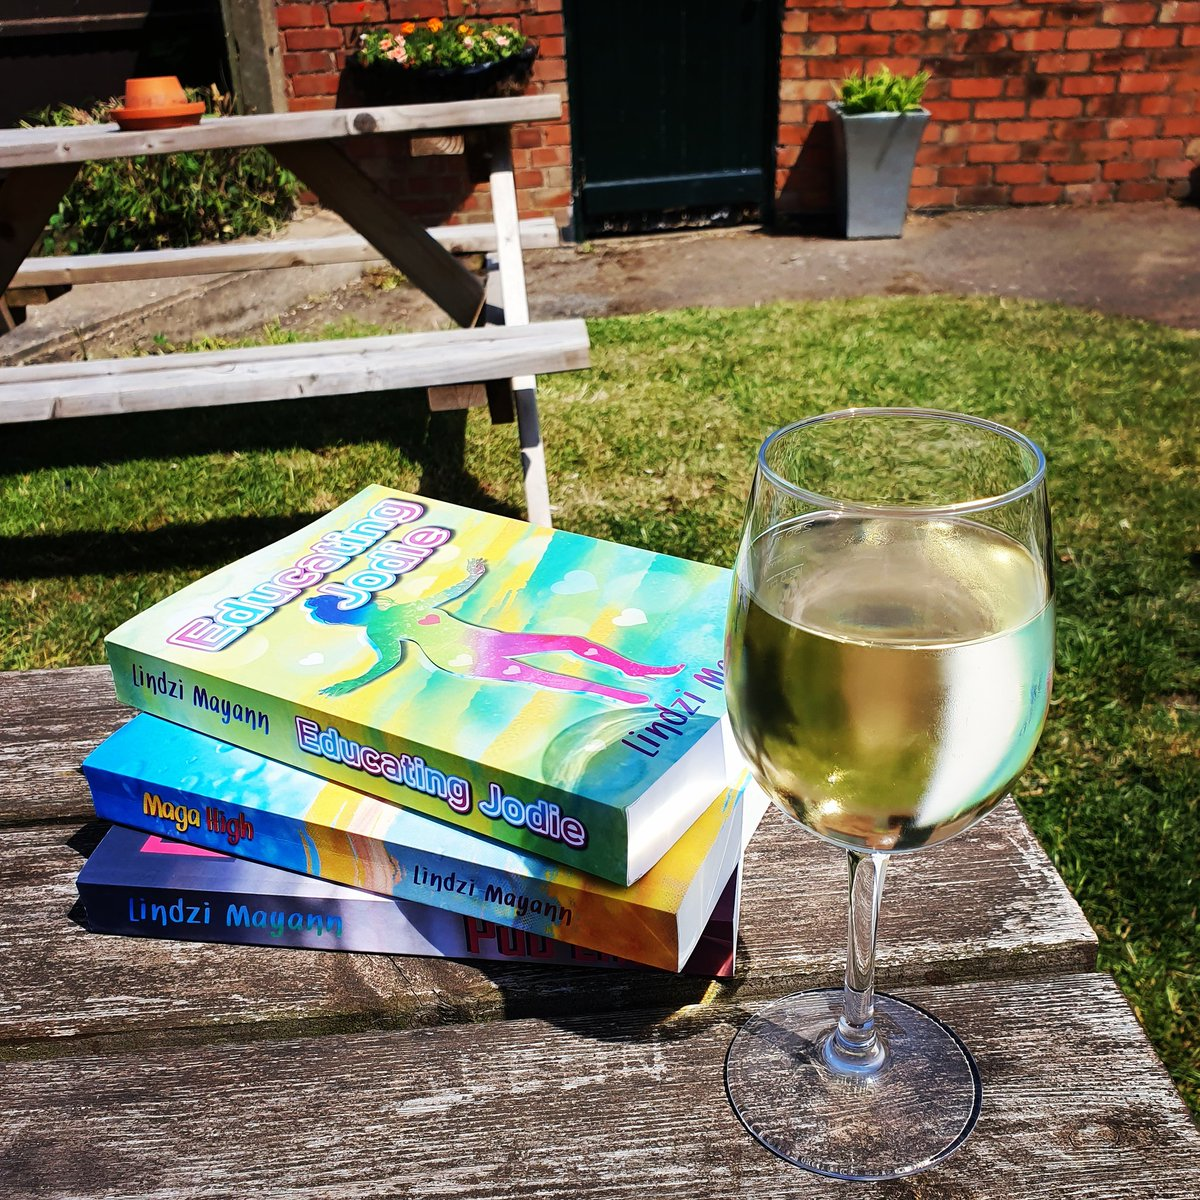 It's #NationalWineDay Get involved  grab a glass of your favourite wine and download a copy of Maga High, the first in the trilogy. And relax #HappyWeekend #sunny #saturday #WineDay #readingcommunity